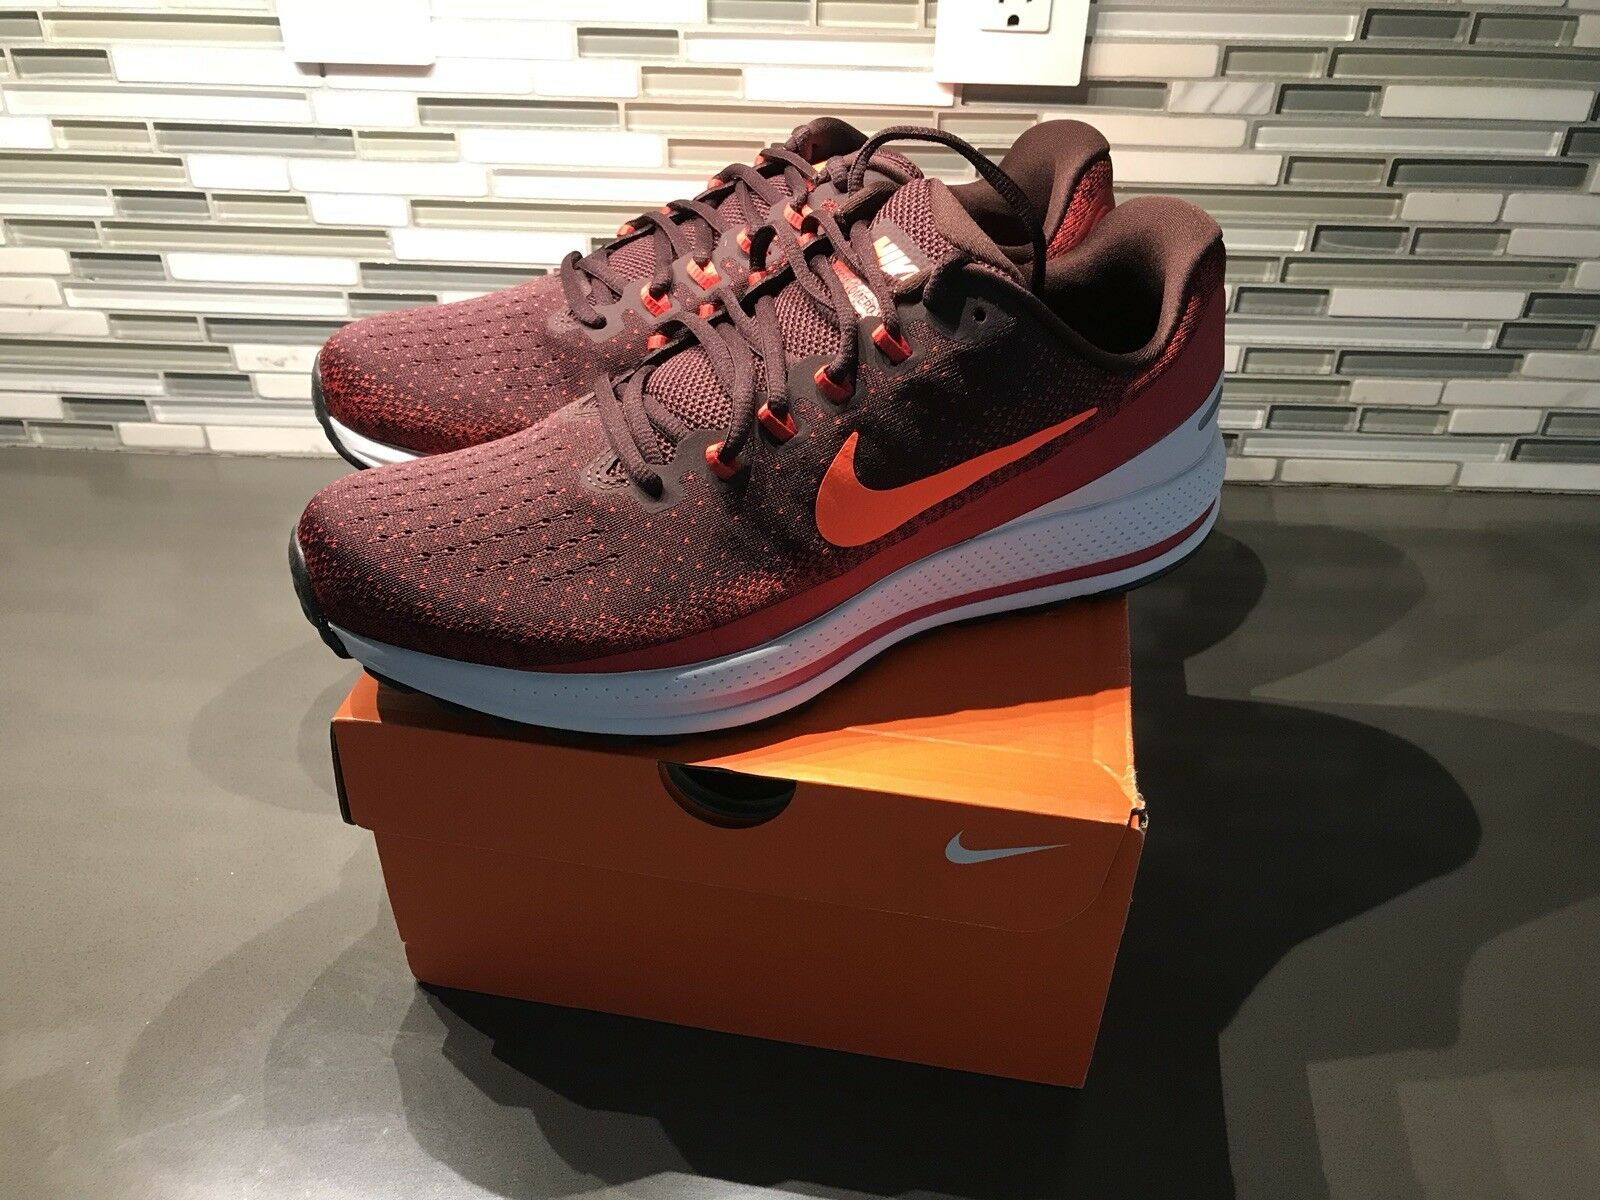 New Nike Air Zoom Vomero 13 Men's Running shoes, Size 11.5 922908 600